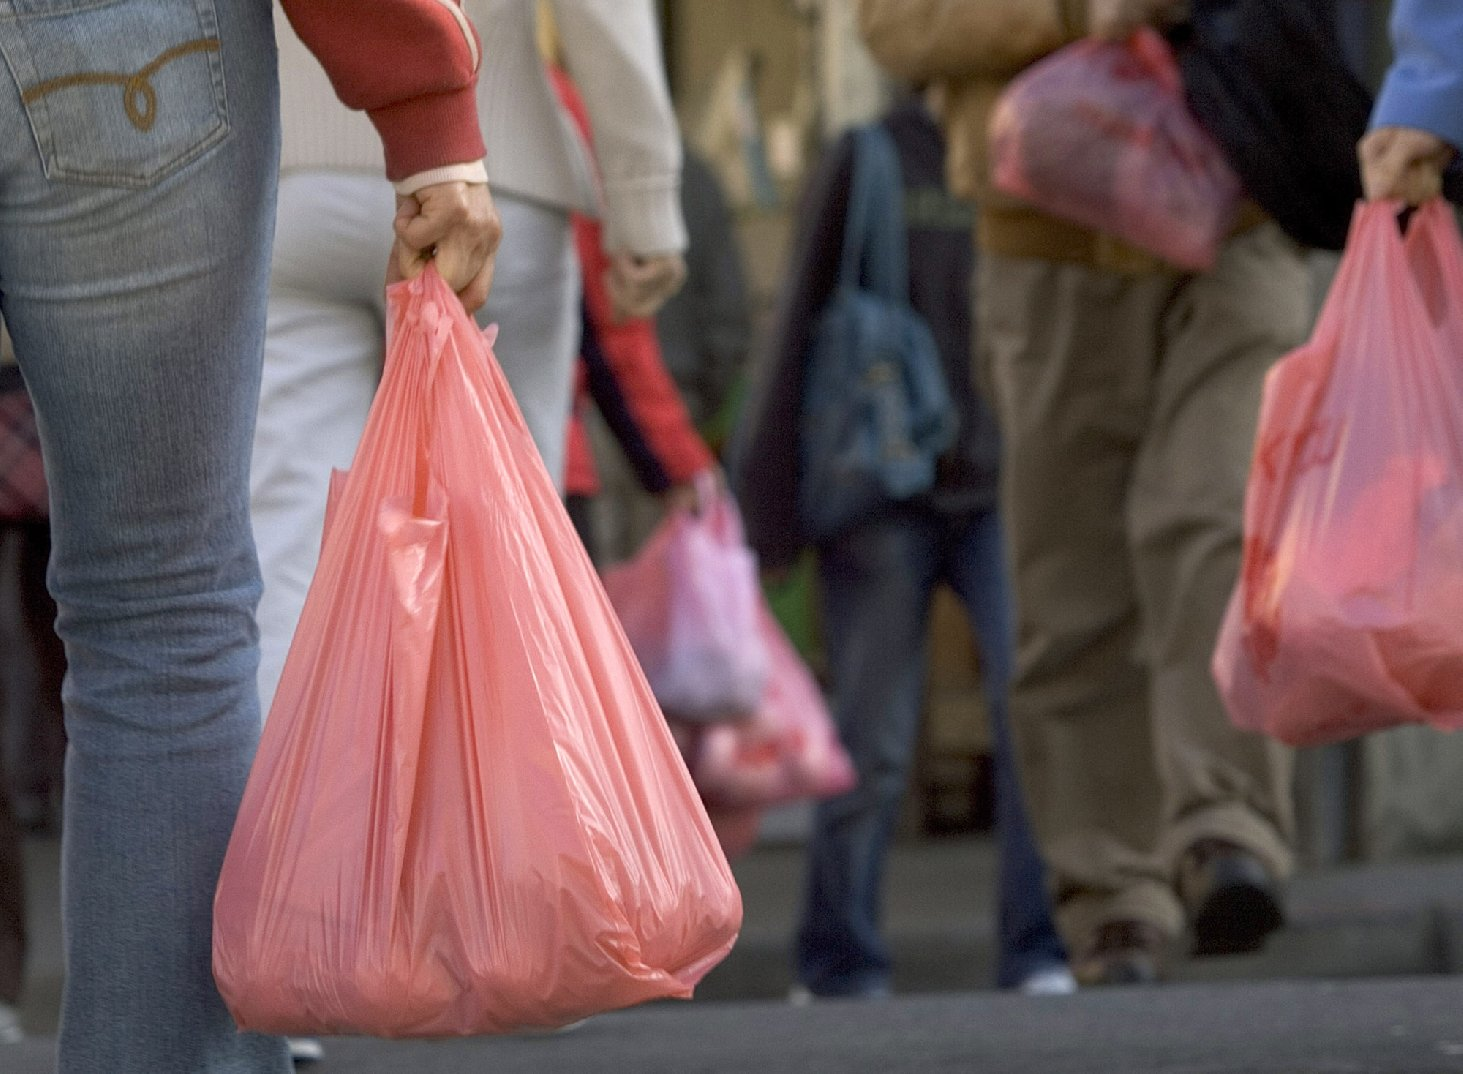 Shoppers in San Franicsco's Chinatown with plastic bags. (David Paul Morris/Getty Images)